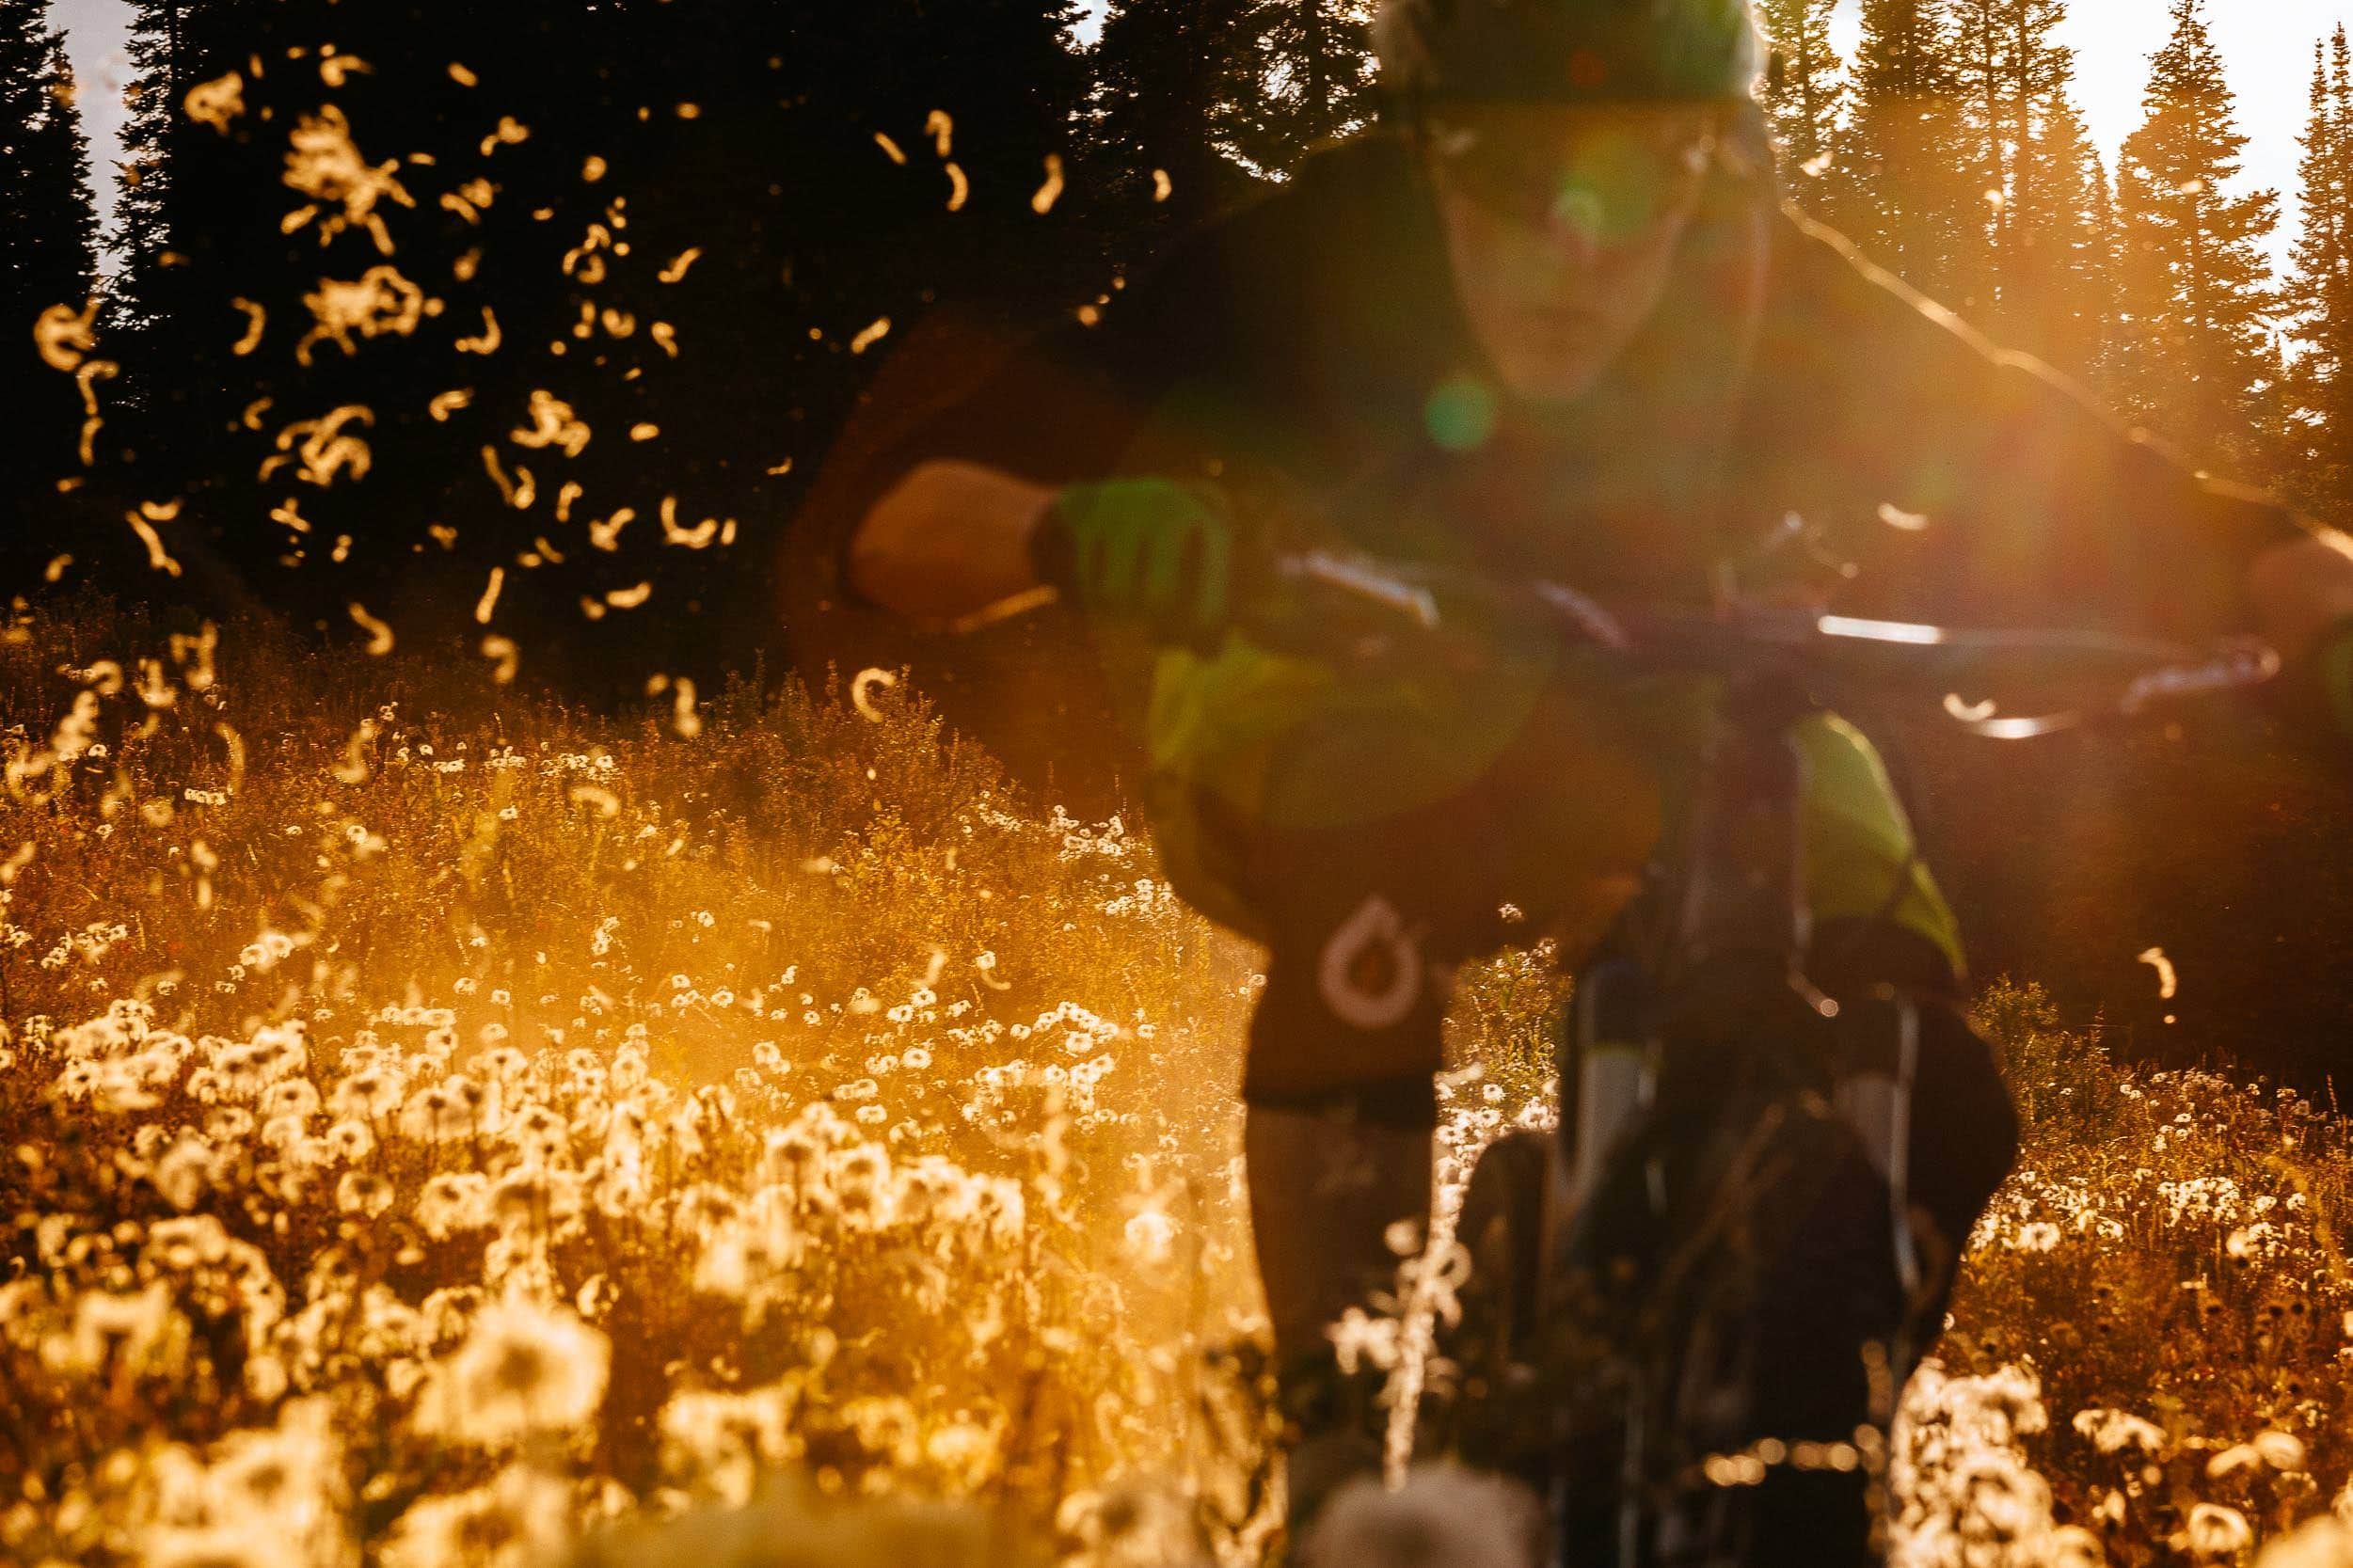 Andrew Whiteford rides the lift accessed singletrack trails of Grand Targhee Resort at sunset